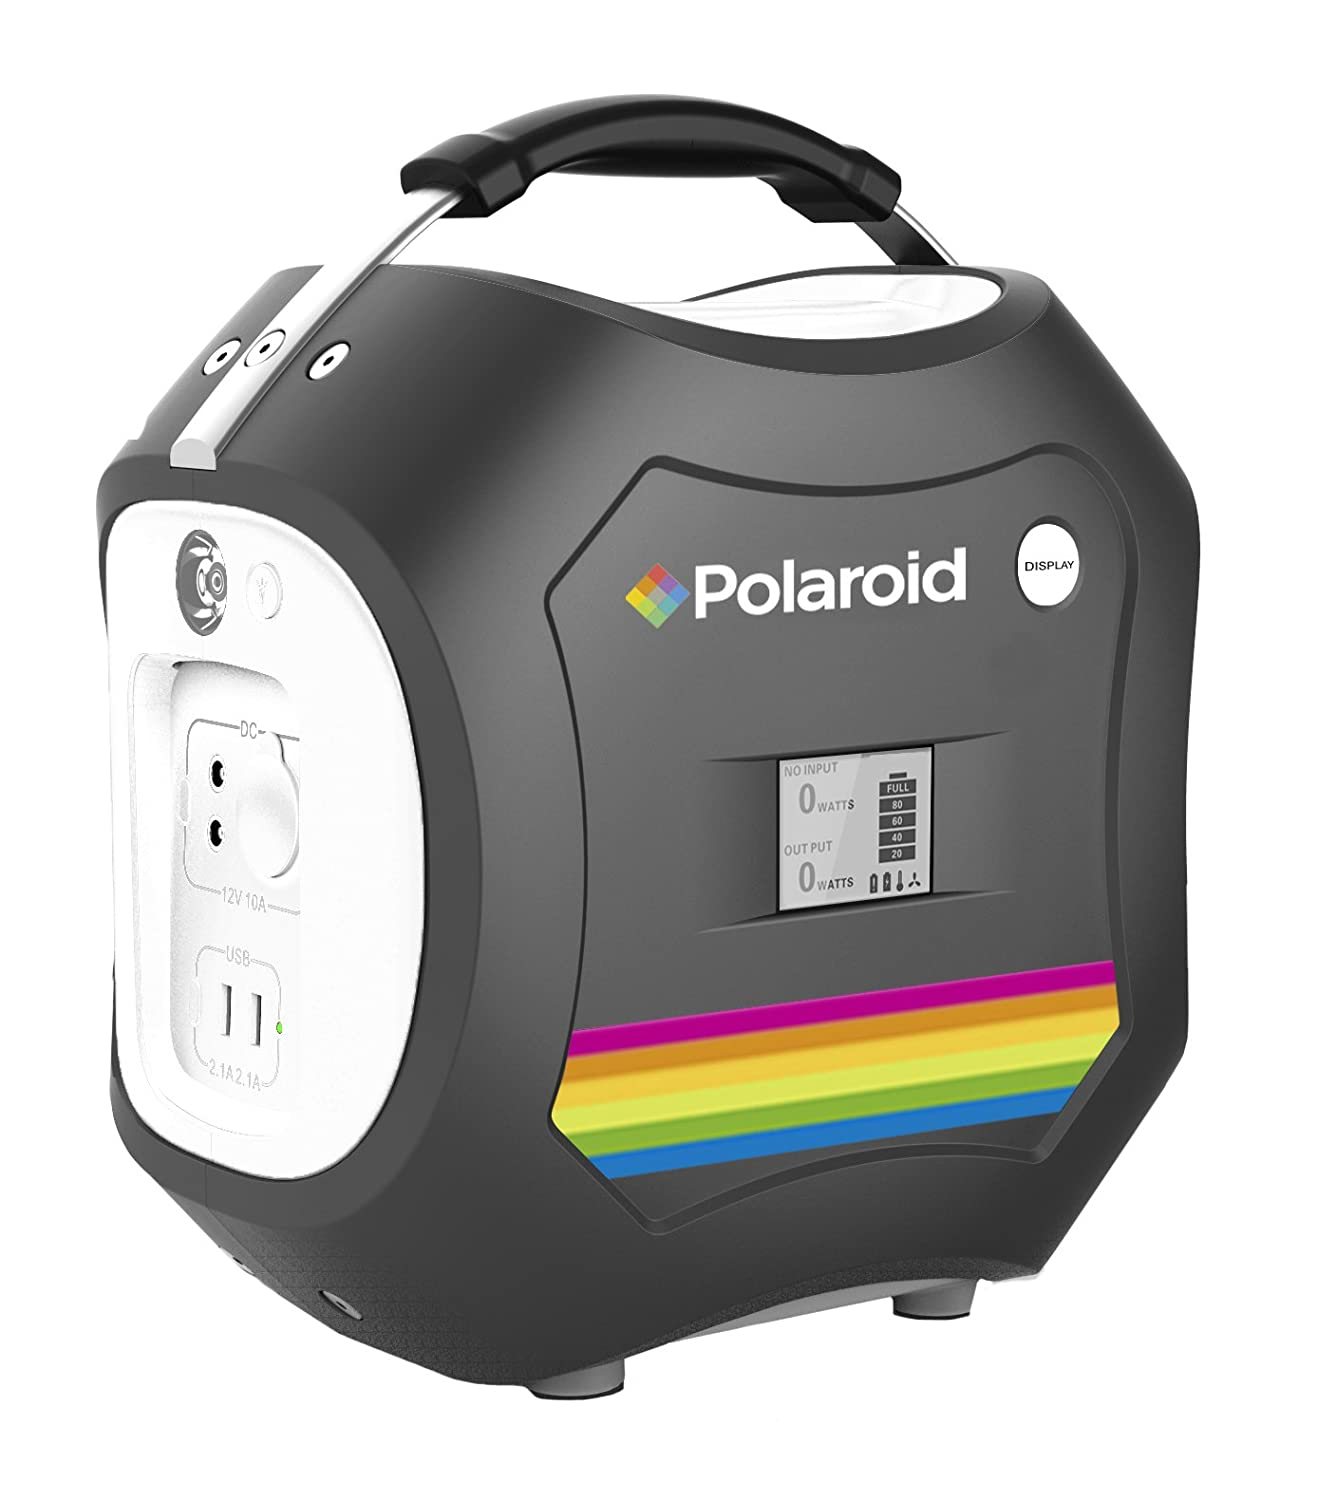 578Wh Polaroid PS600 Portable Power Supply Everywhere, Mobile AC / DC  Outlet, Light & Easy Generator Lithium Ion Battery Energy Storage System